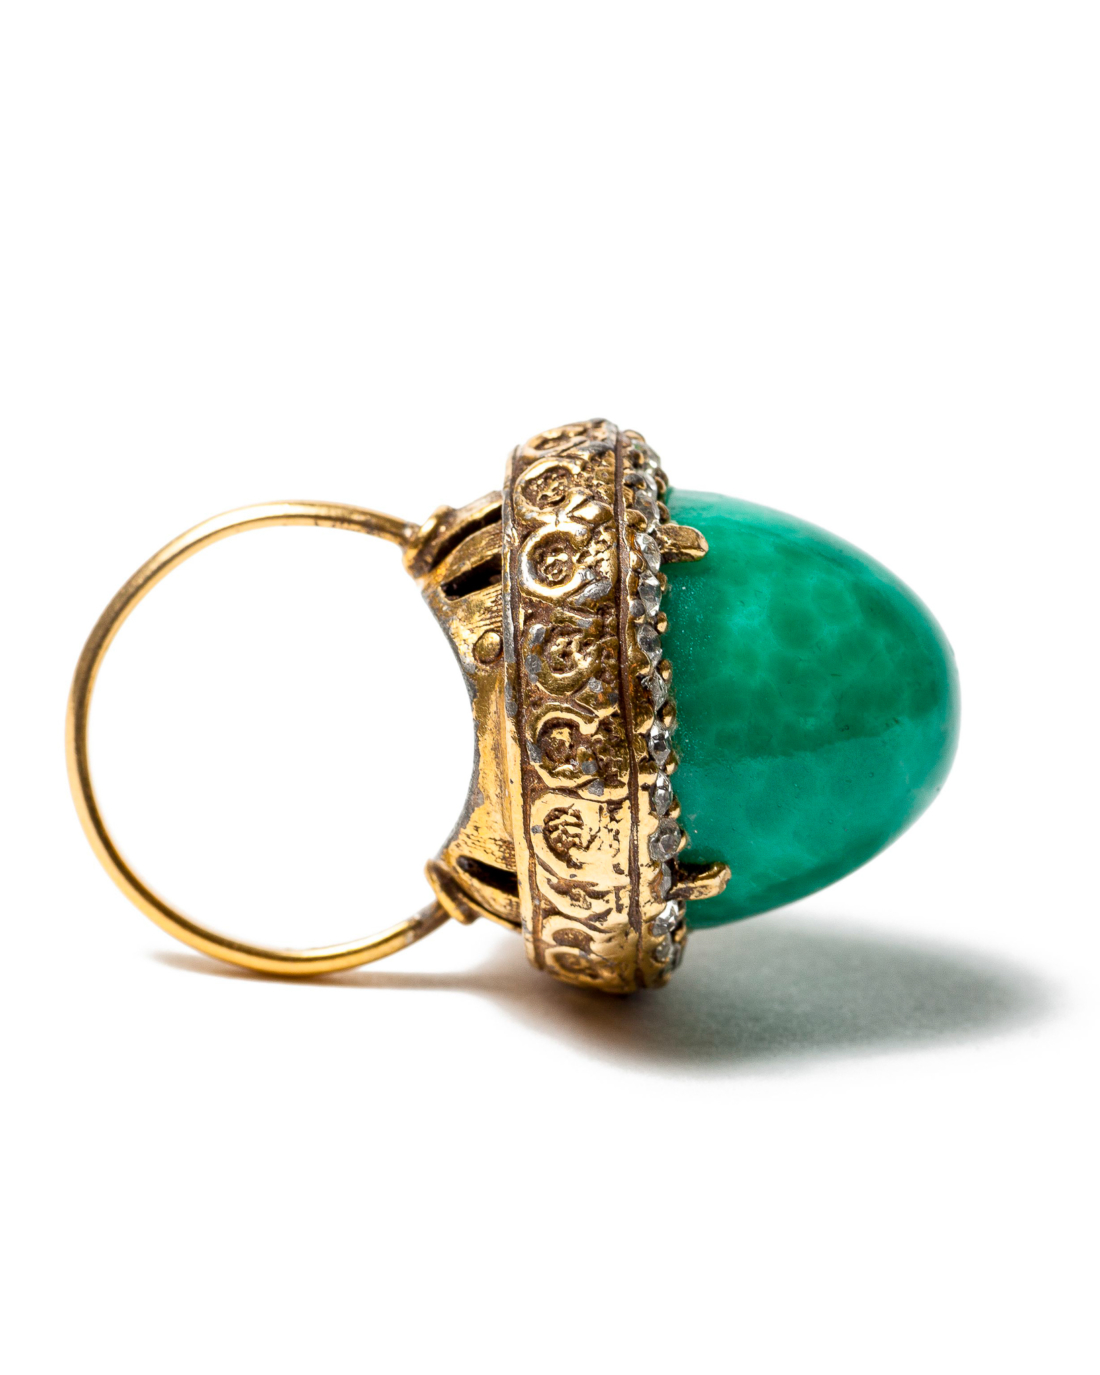 Opulent Green Peking Glass Domed Cocktail Ring, circa 1960's